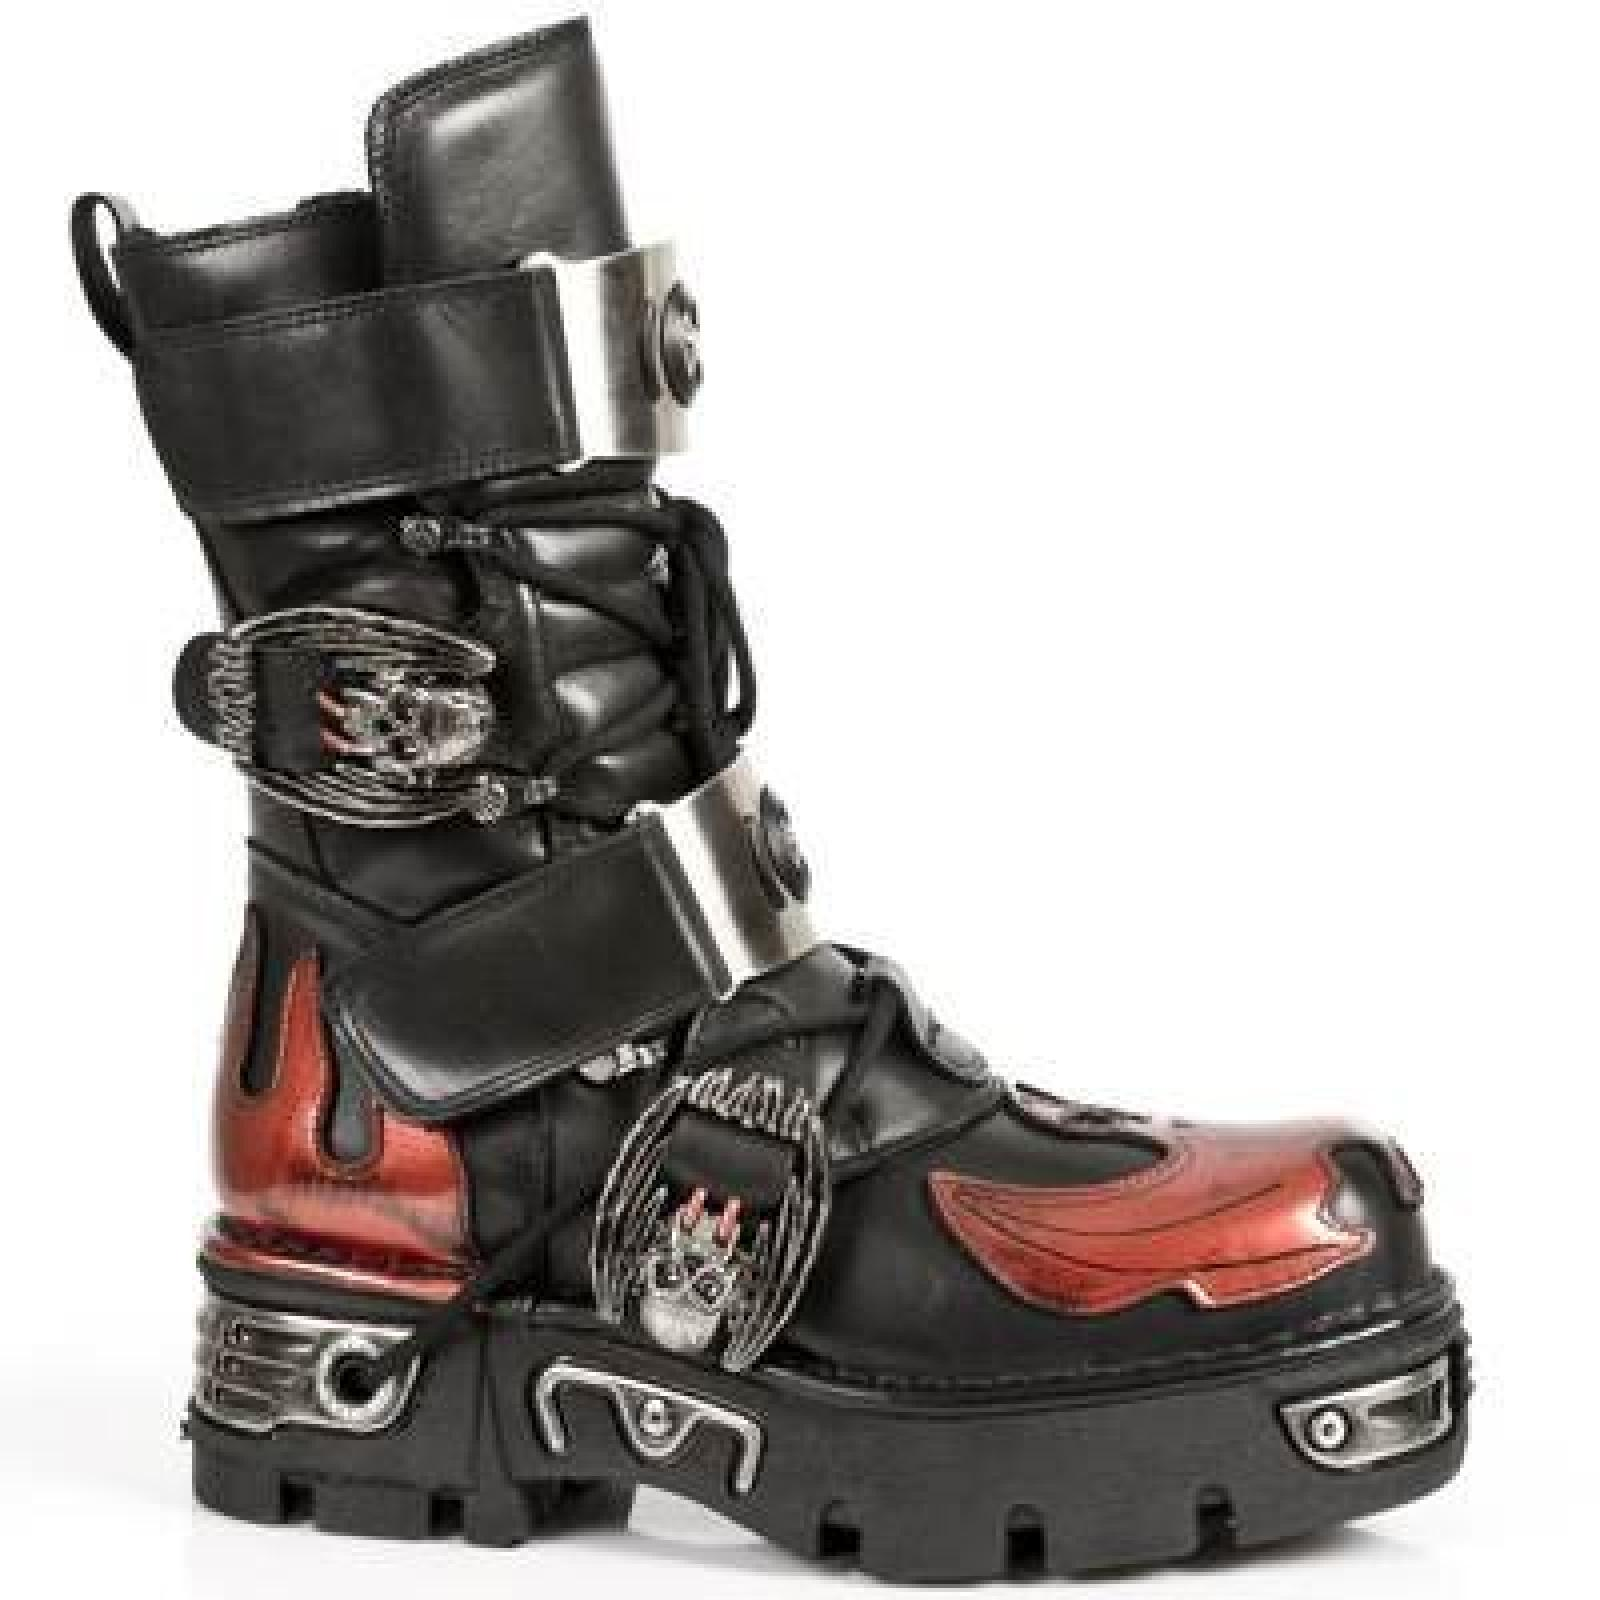 New Rock Metallic Rot Stiefel M.195-S1